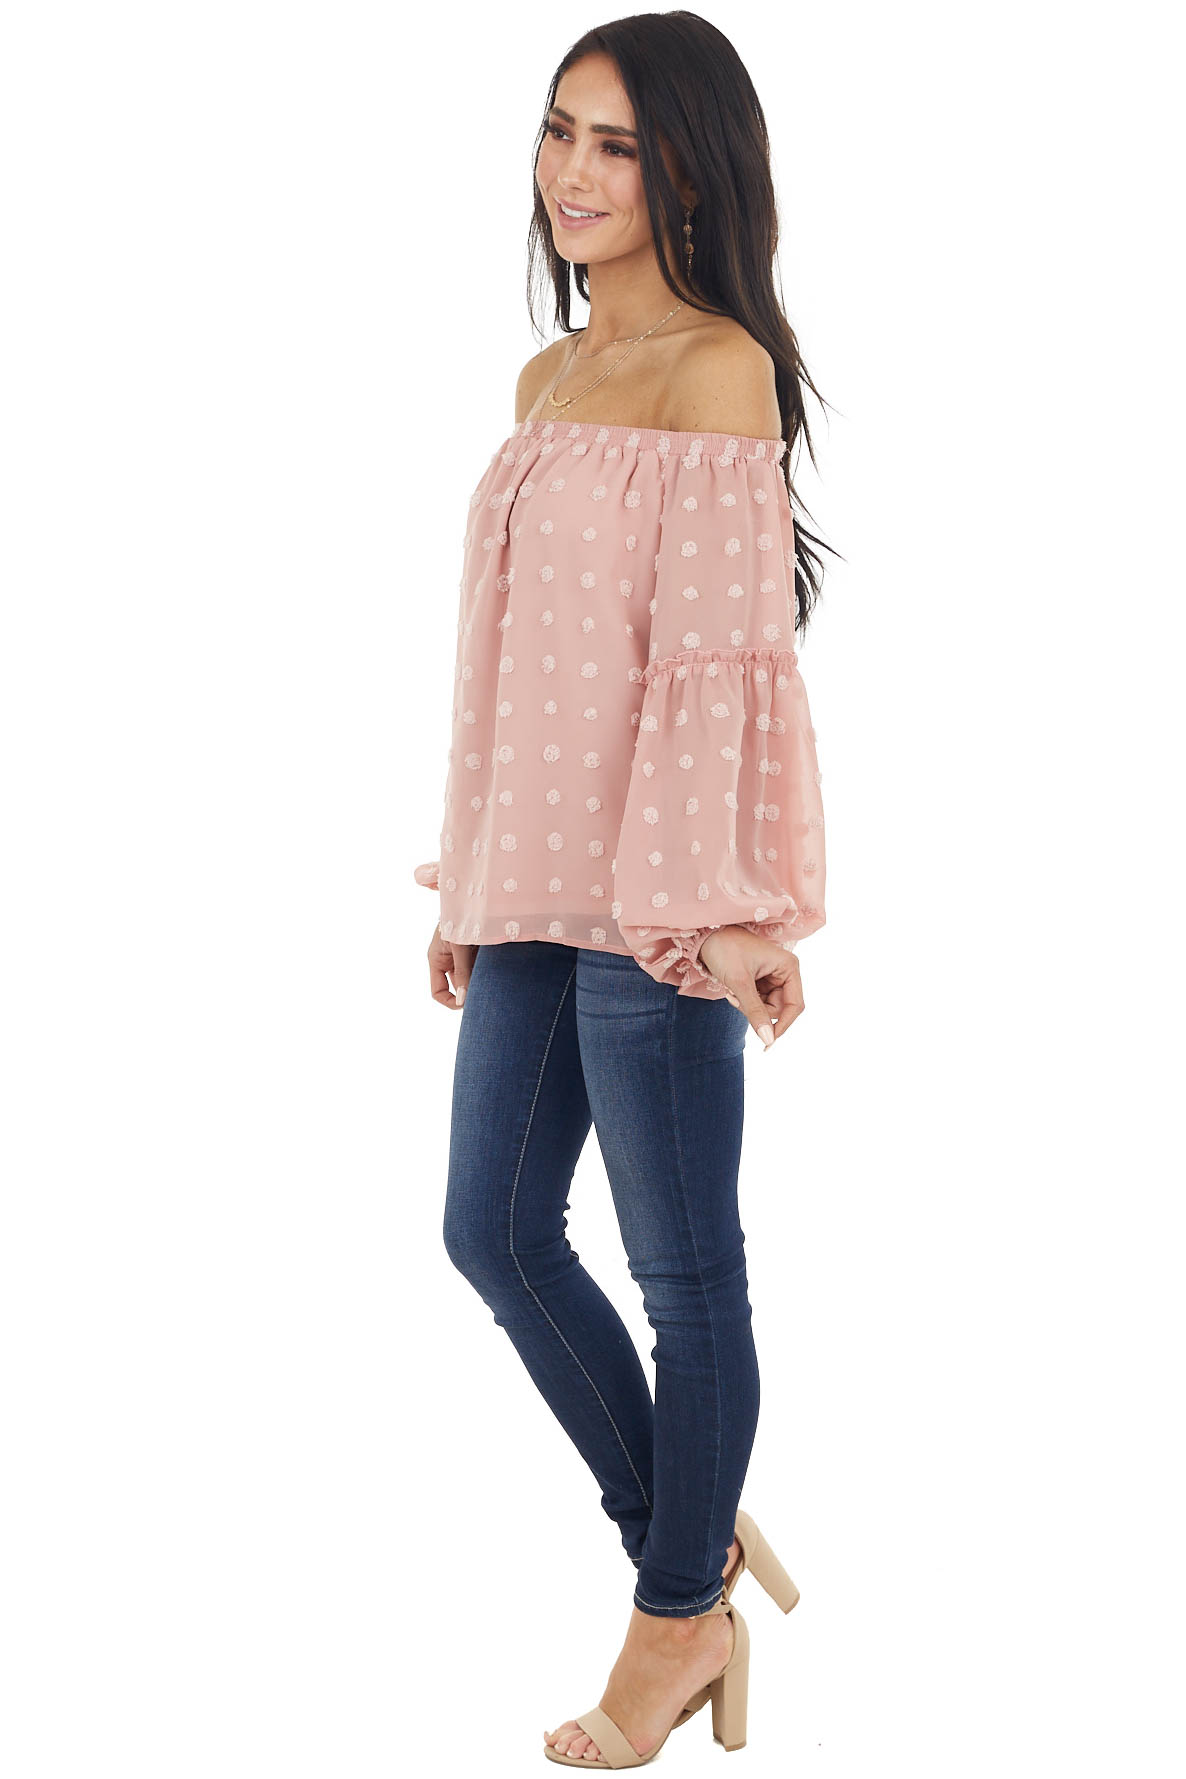 Dusty Blush Off the Shoulder Blouse with Swiss Dots